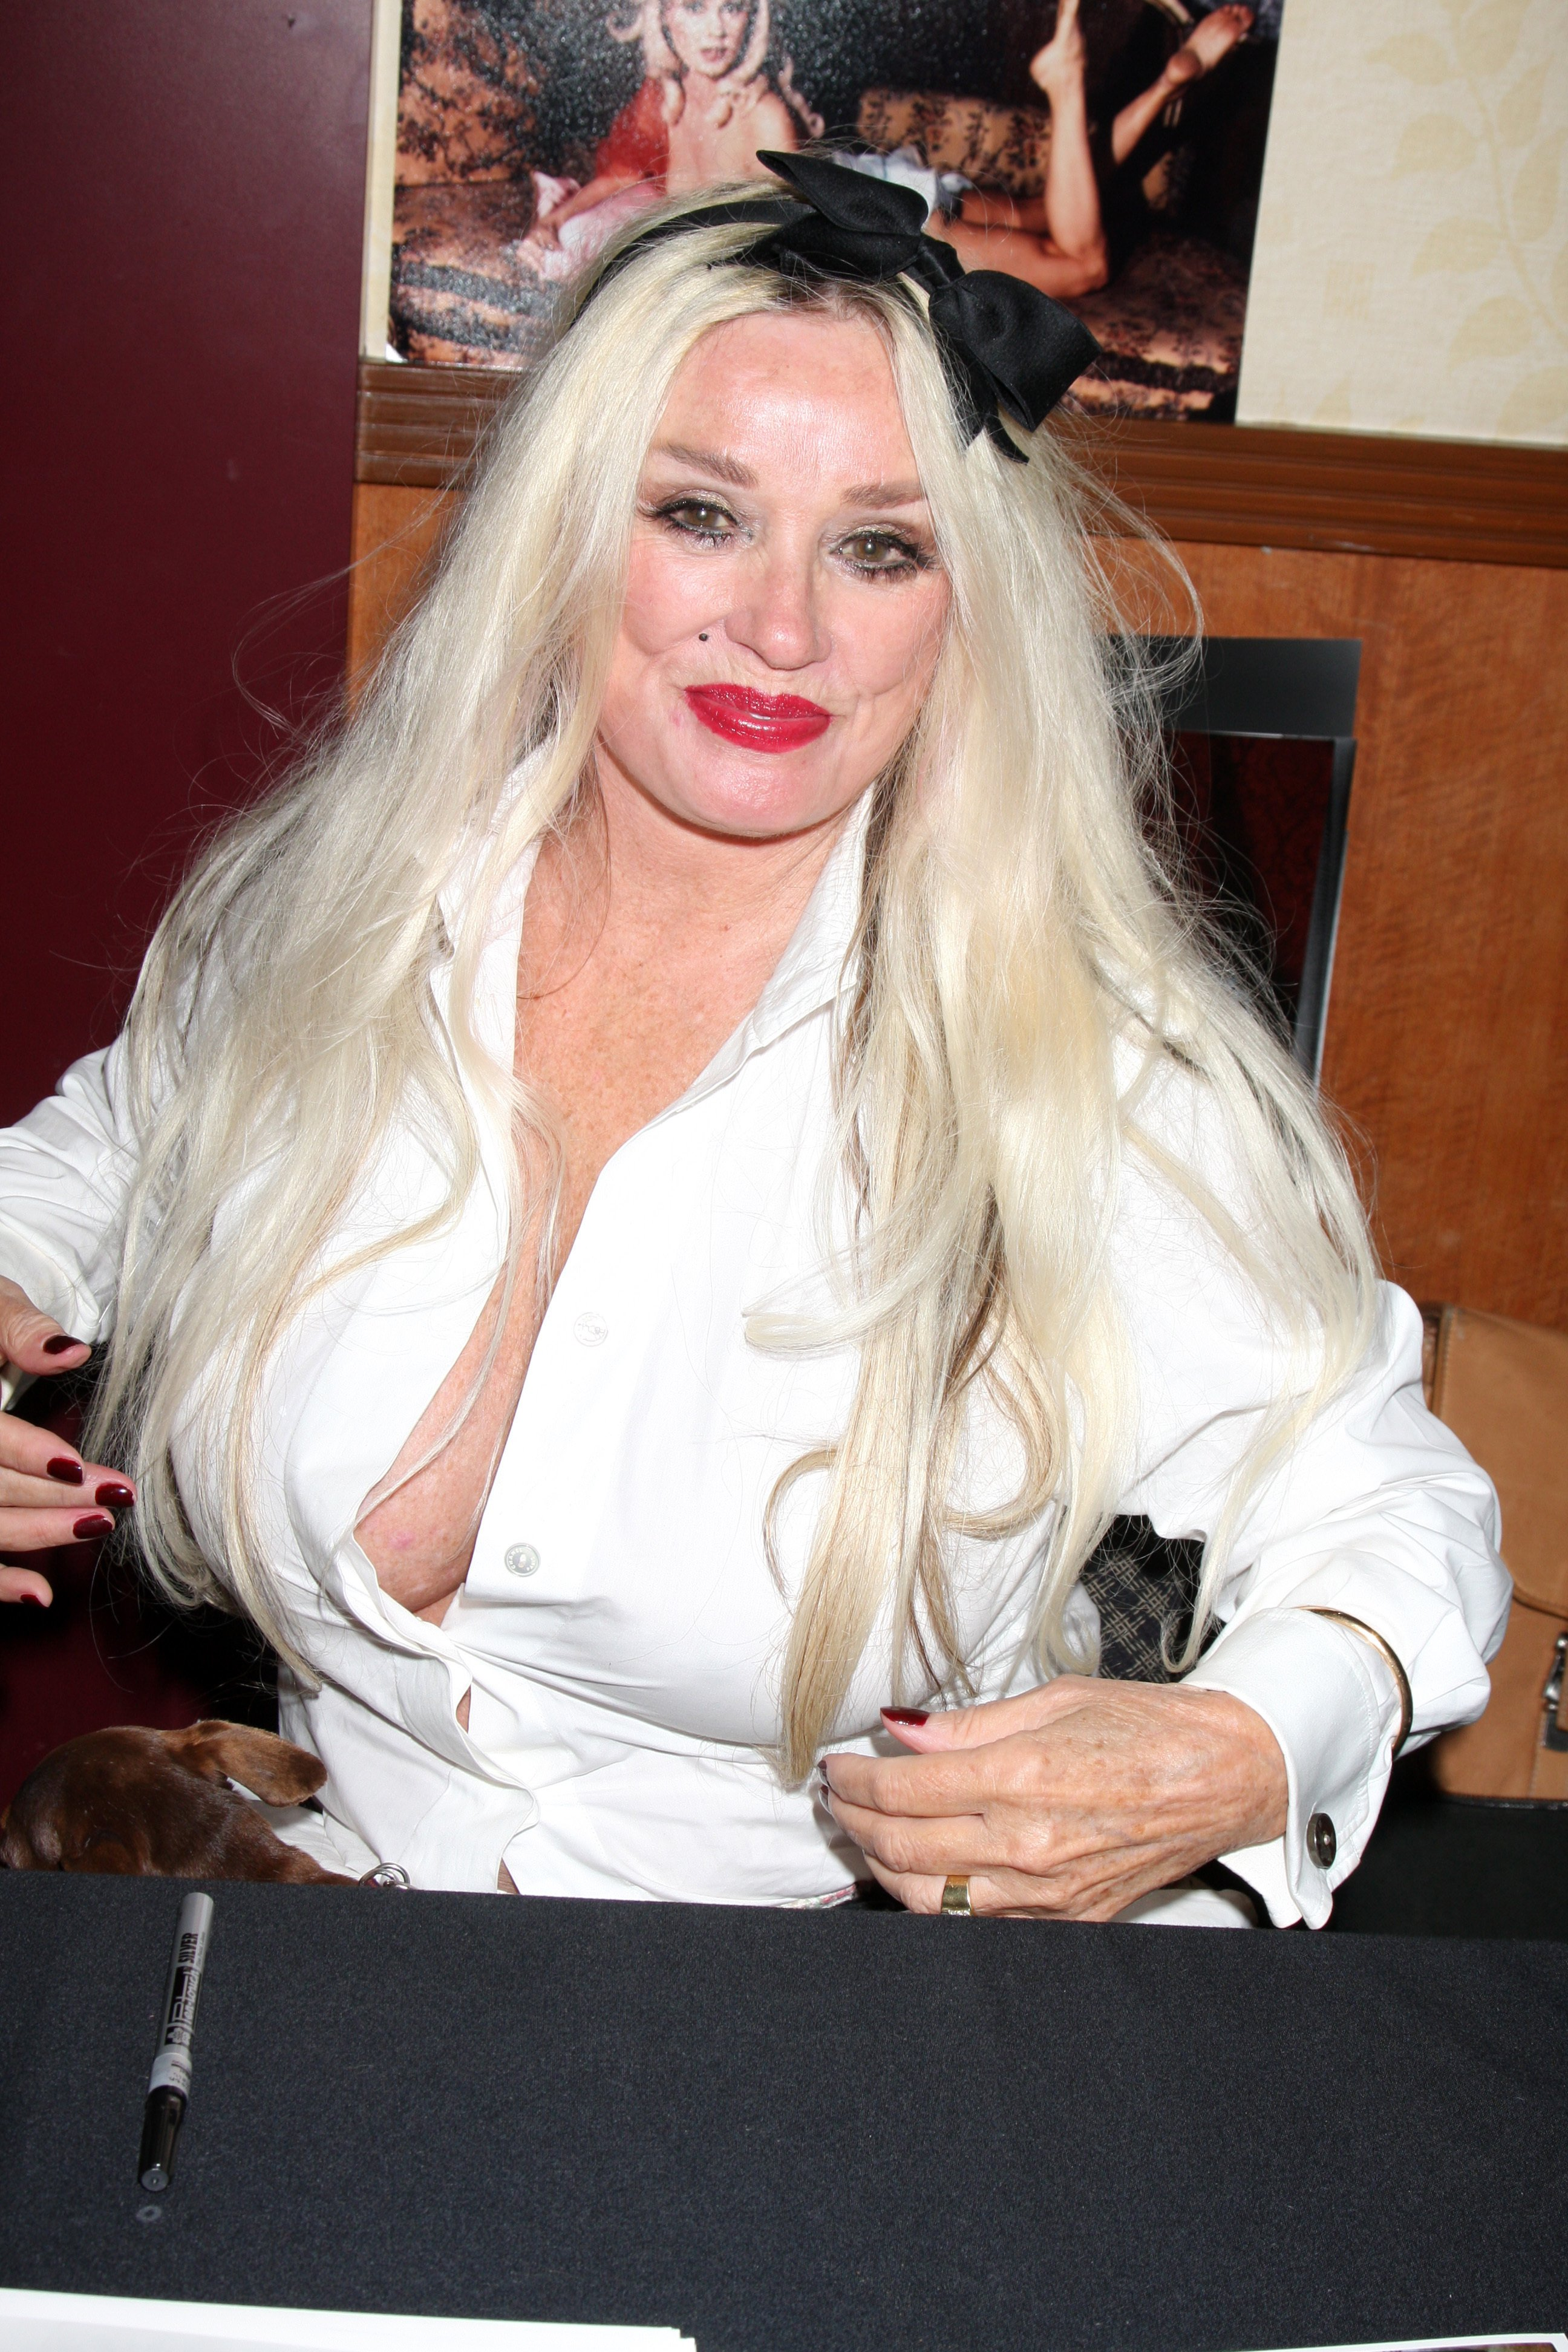 Mamie Van Doren at the Hollywood Show at Mariott Hotel on July24, 2010 in Burbank, CA | Photo: Shutterstock